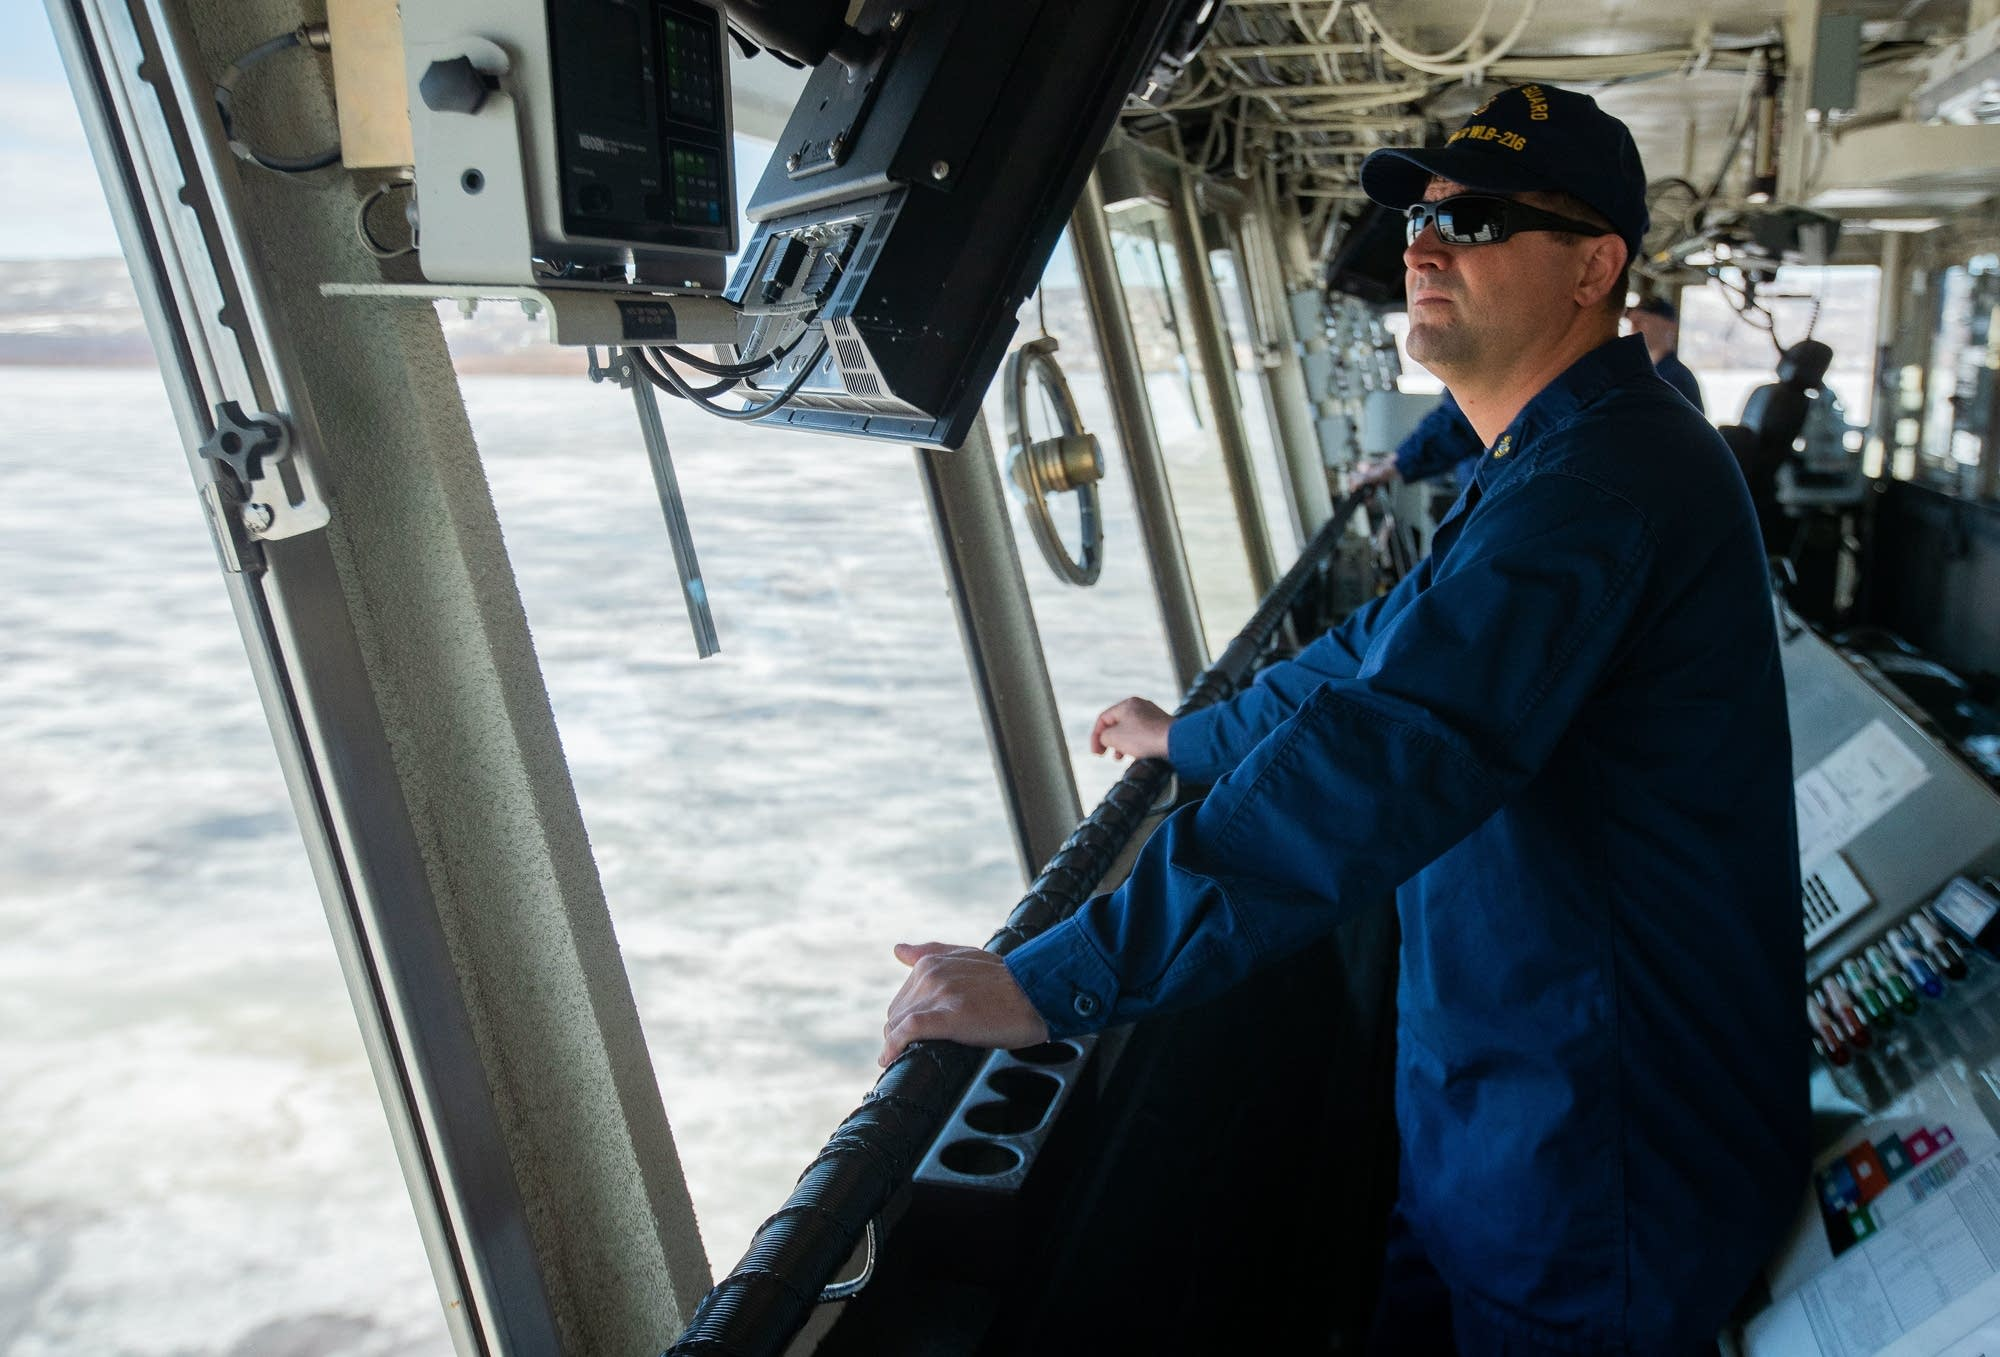 Chief Petty Officer Ben L'Allier directs navigation of the ice cutter.